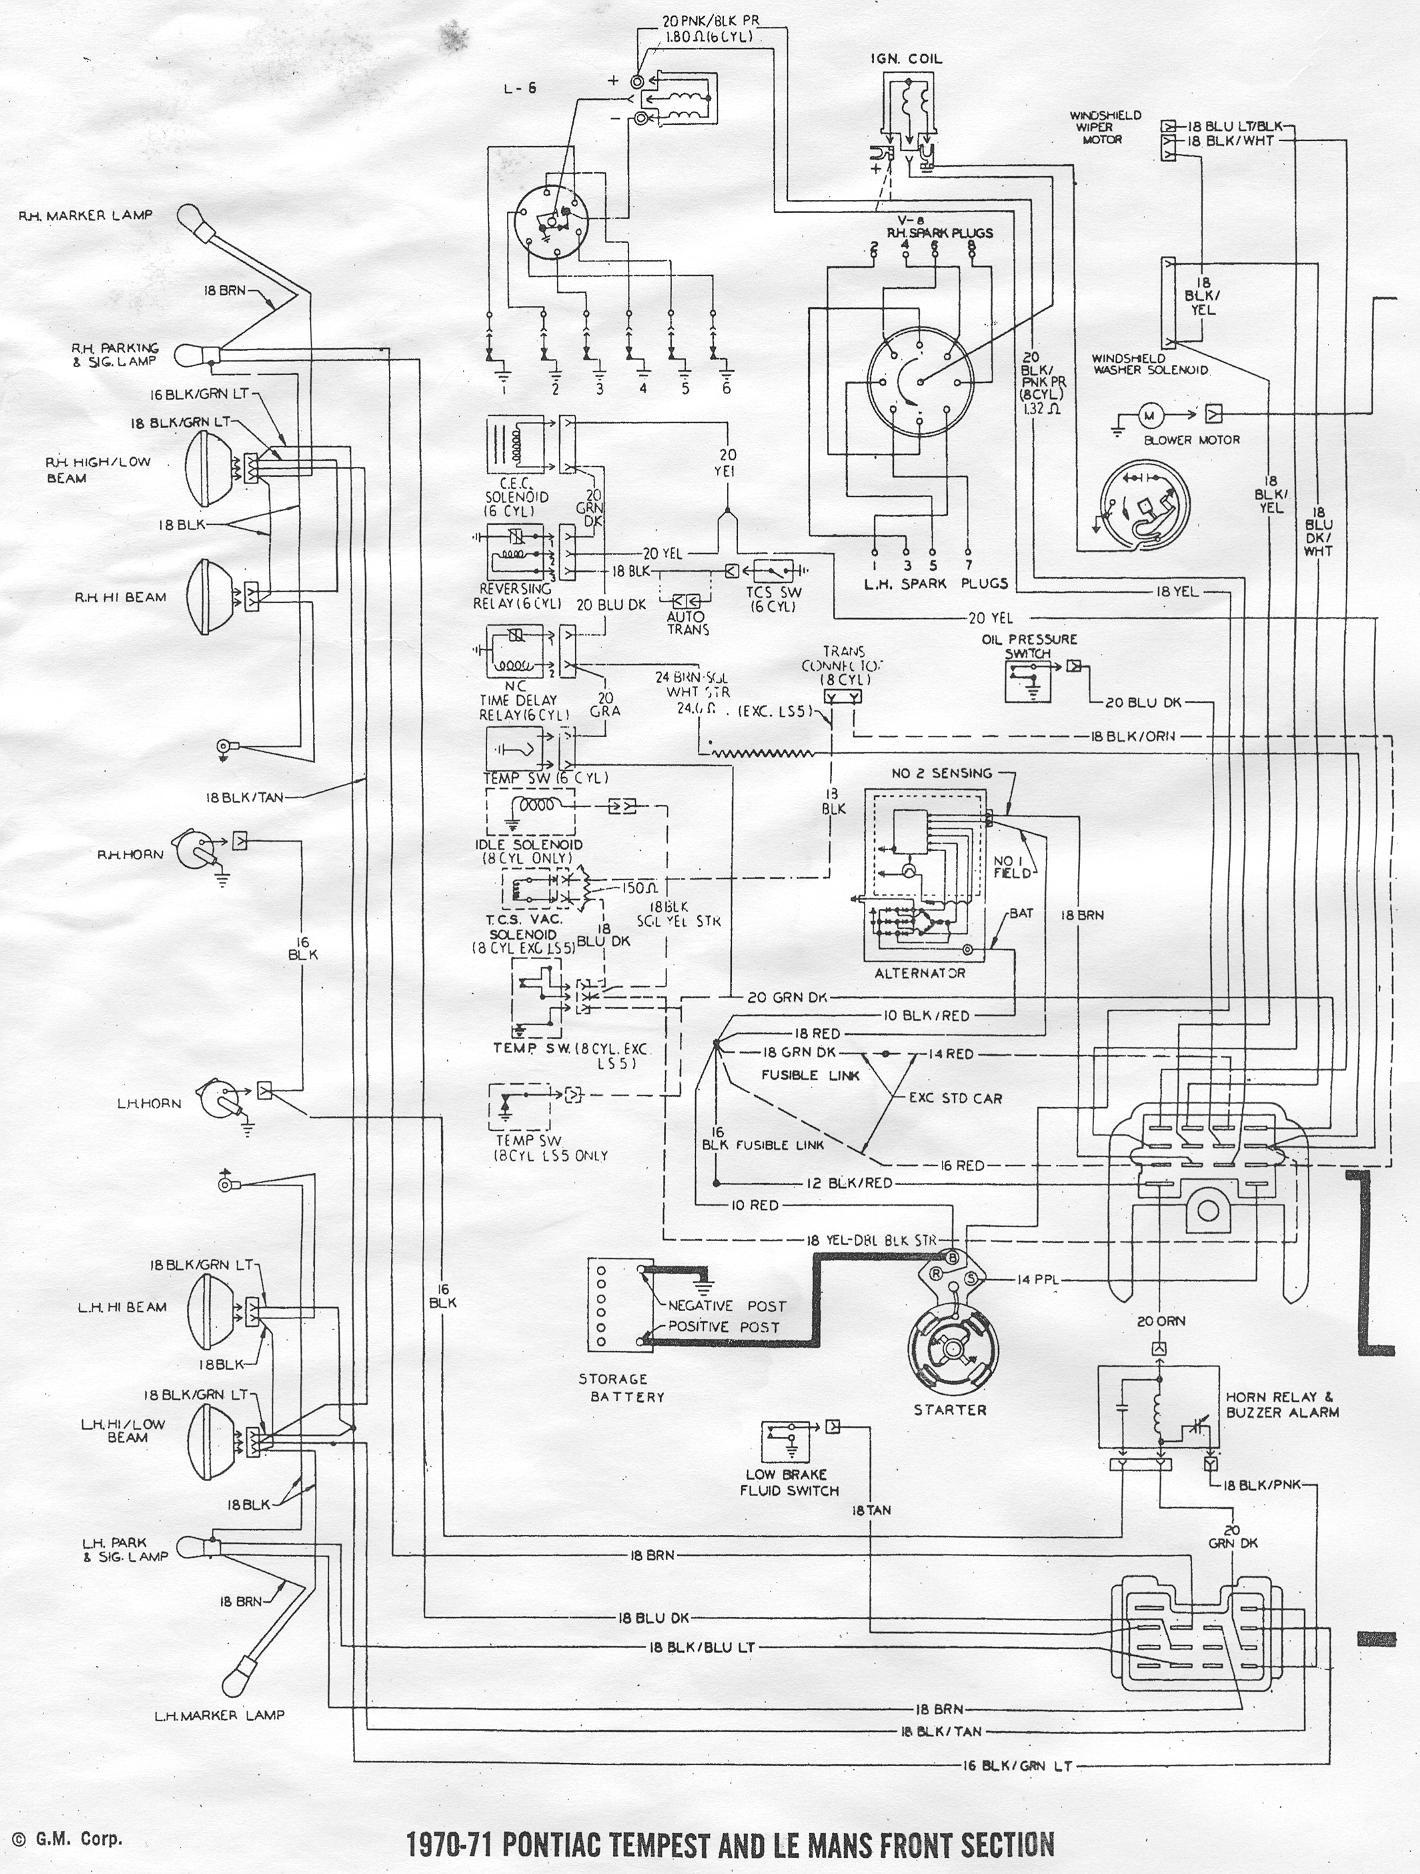 67 Pontiac Coil Wiring Diagram Library Amc Javelin Tach Diagrams Click Image For Larger Version Name 70 71 Gto Page1